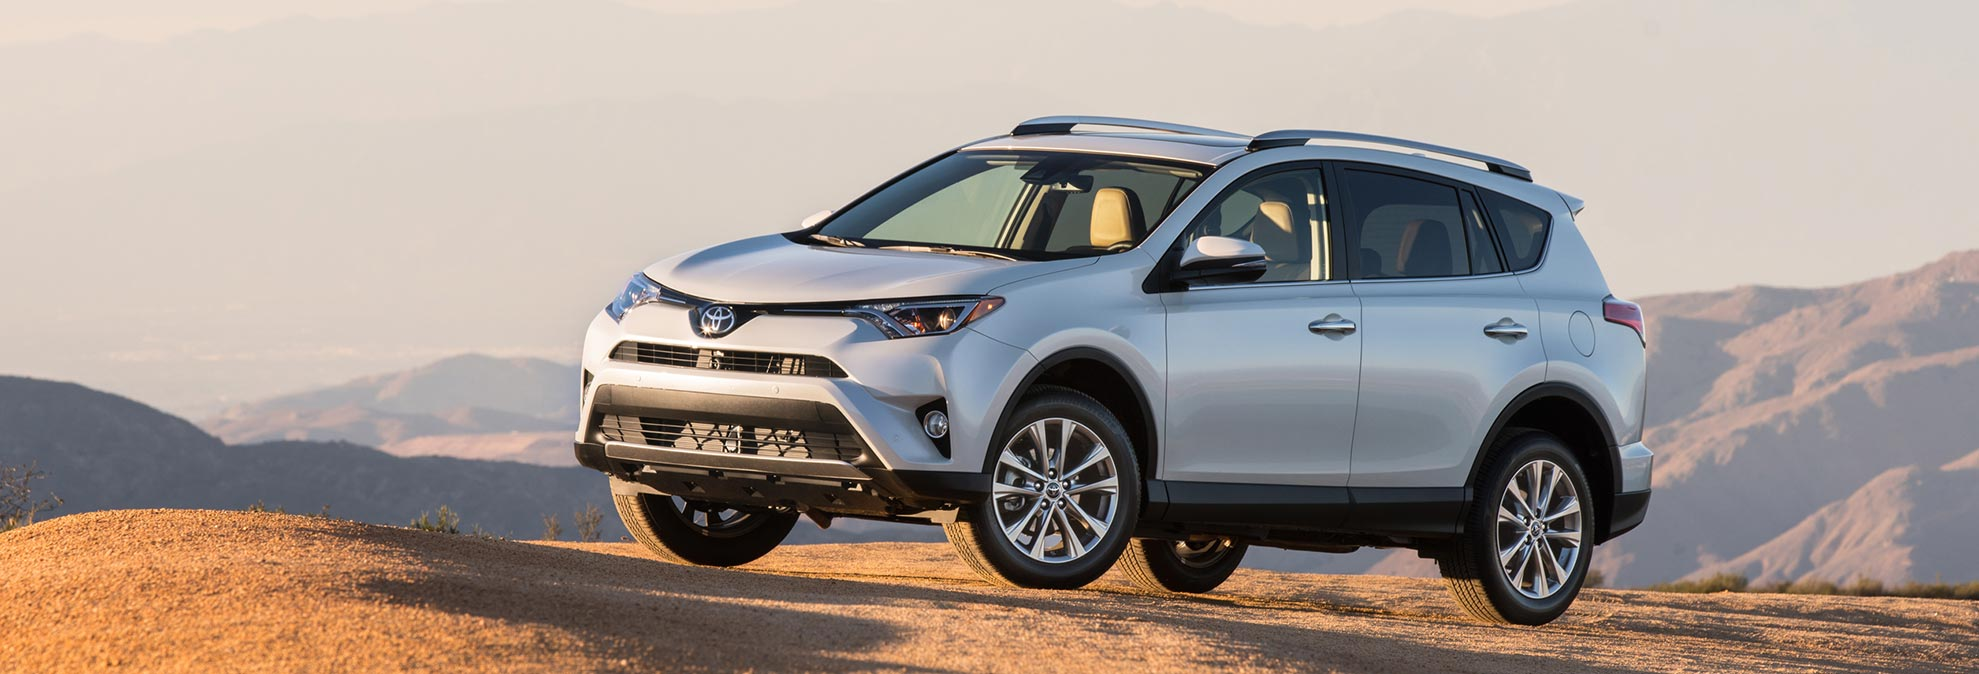 Toyota RAV4: Which Should You Buy? - Consumer Reports